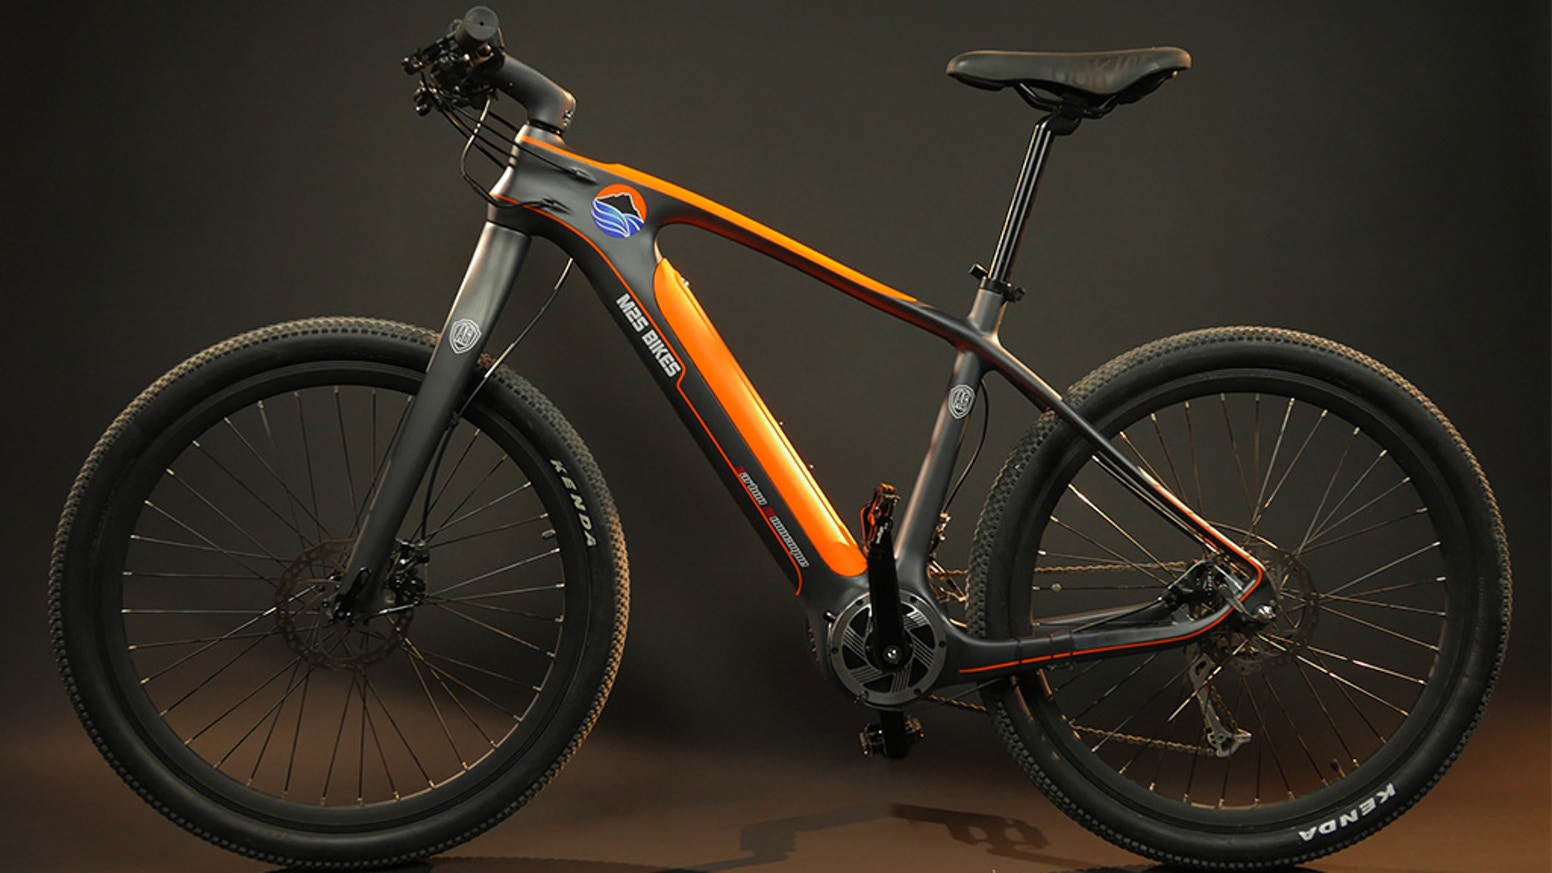 Power up your rides with a lightweight carbon fiber frame, hidden battery + powerful mid-drive motor.